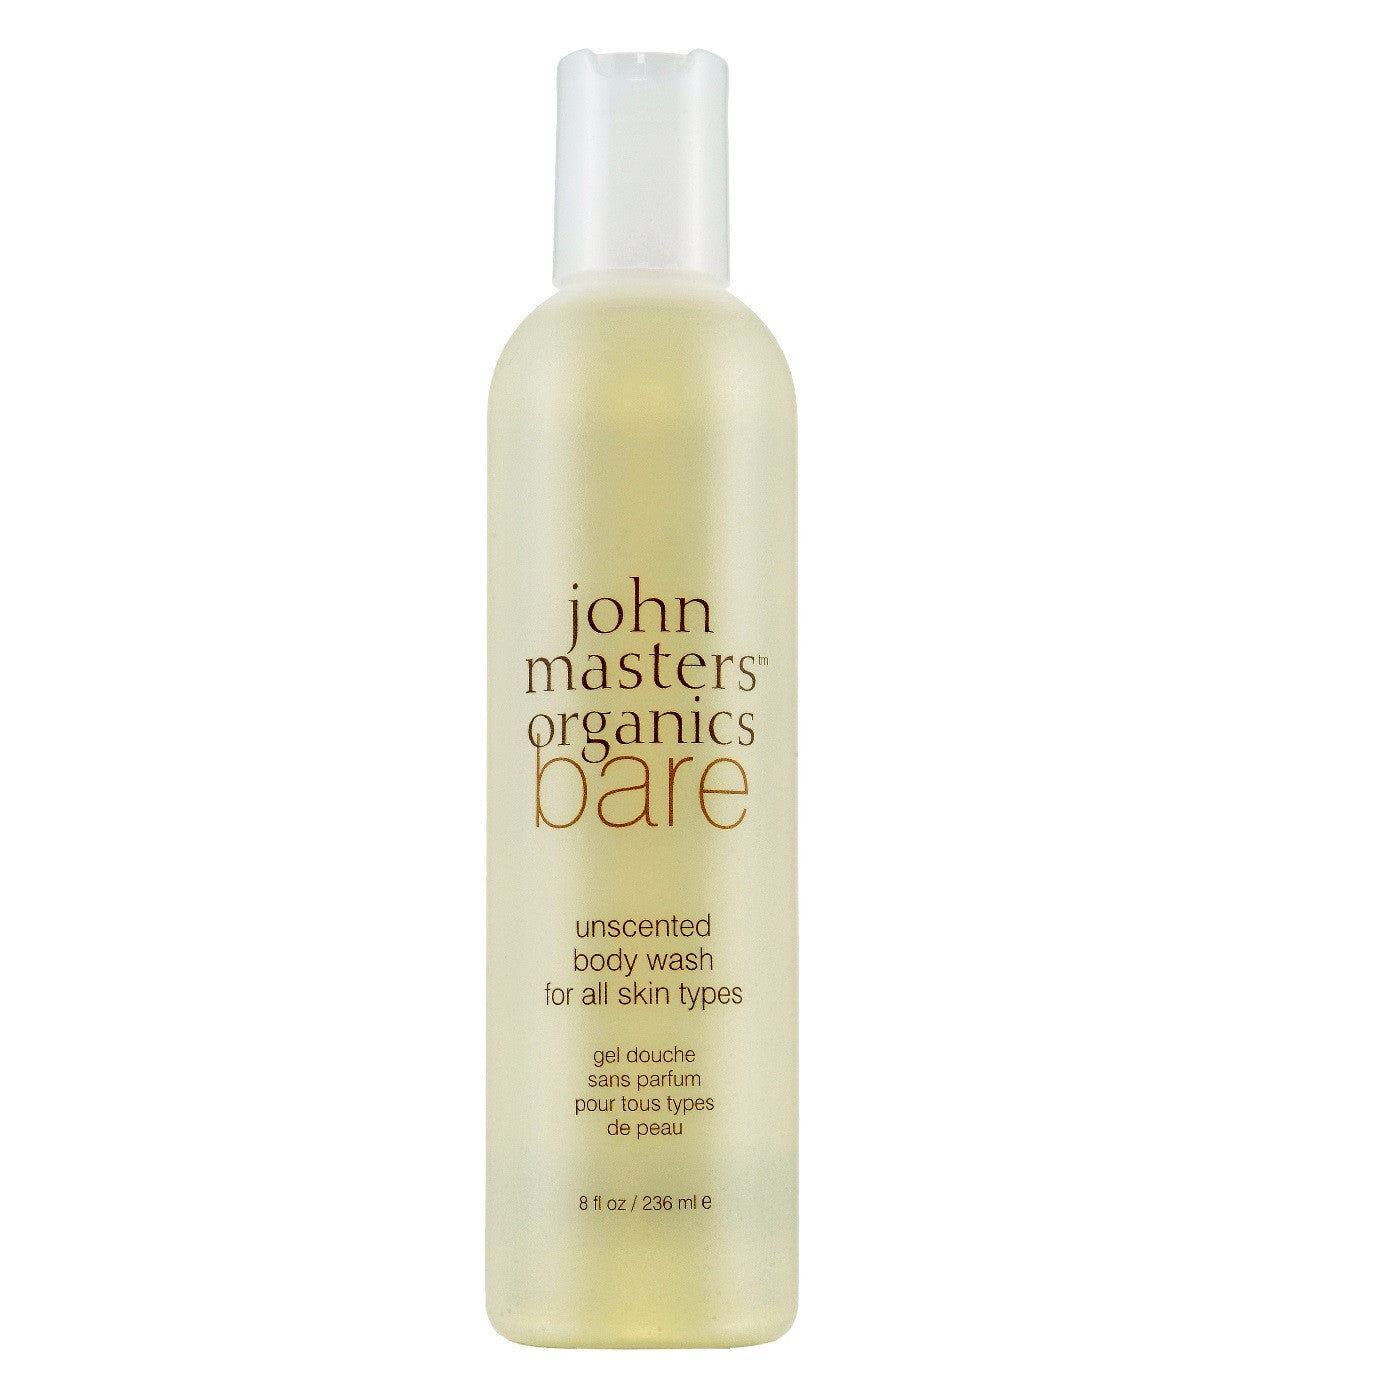 John Masters Organics - Bare Unscented Body Wash for All Skin Types (8 fl oz.)